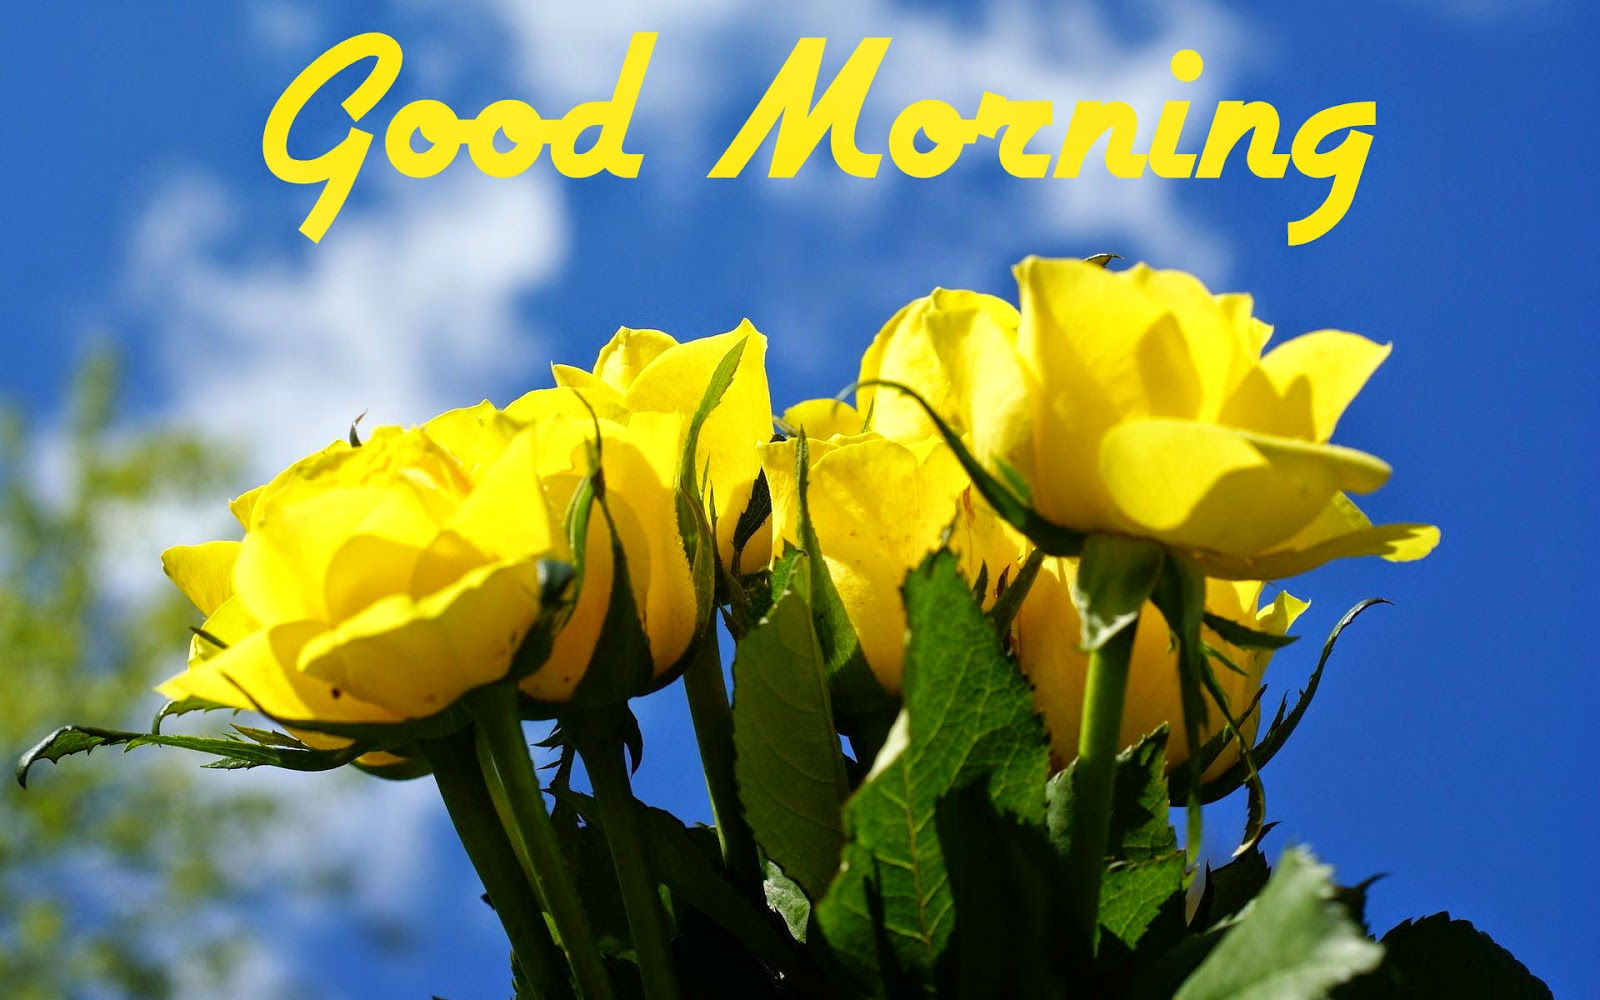 Boy And Girl Kissing Hd Wallpapers Best Yellow Flowers Hd Photo S For Good Morning Festival